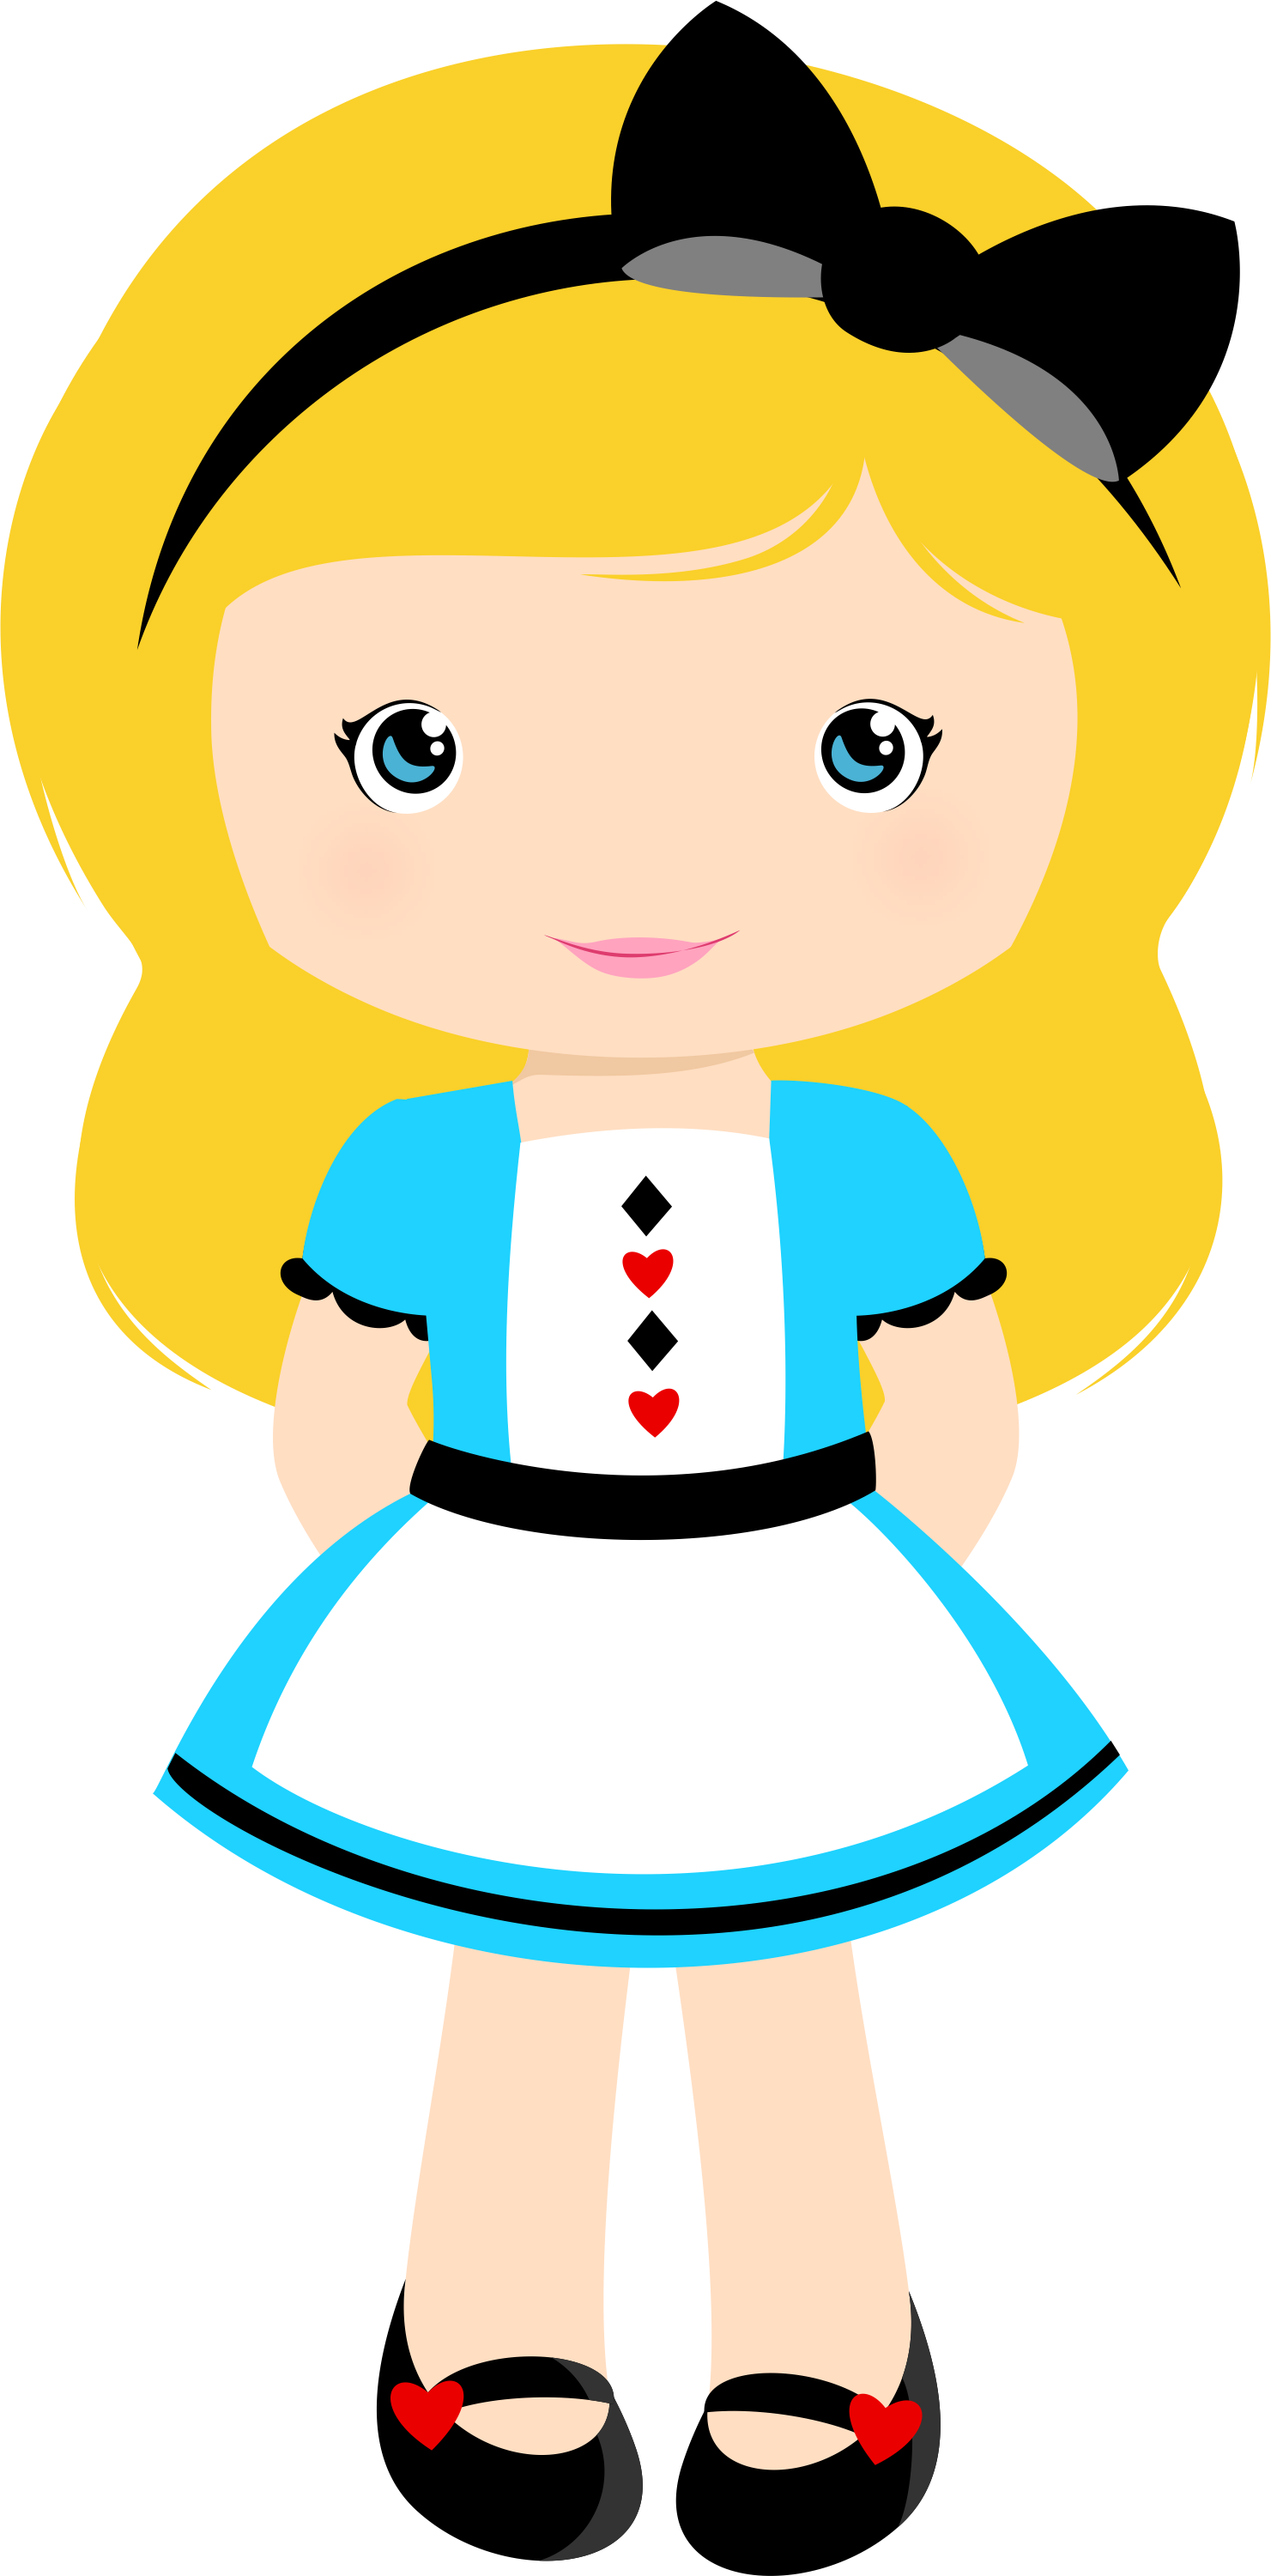 picture royalty free stock Grafos girlscostumes girlcostume png. Wonderland clipart baby